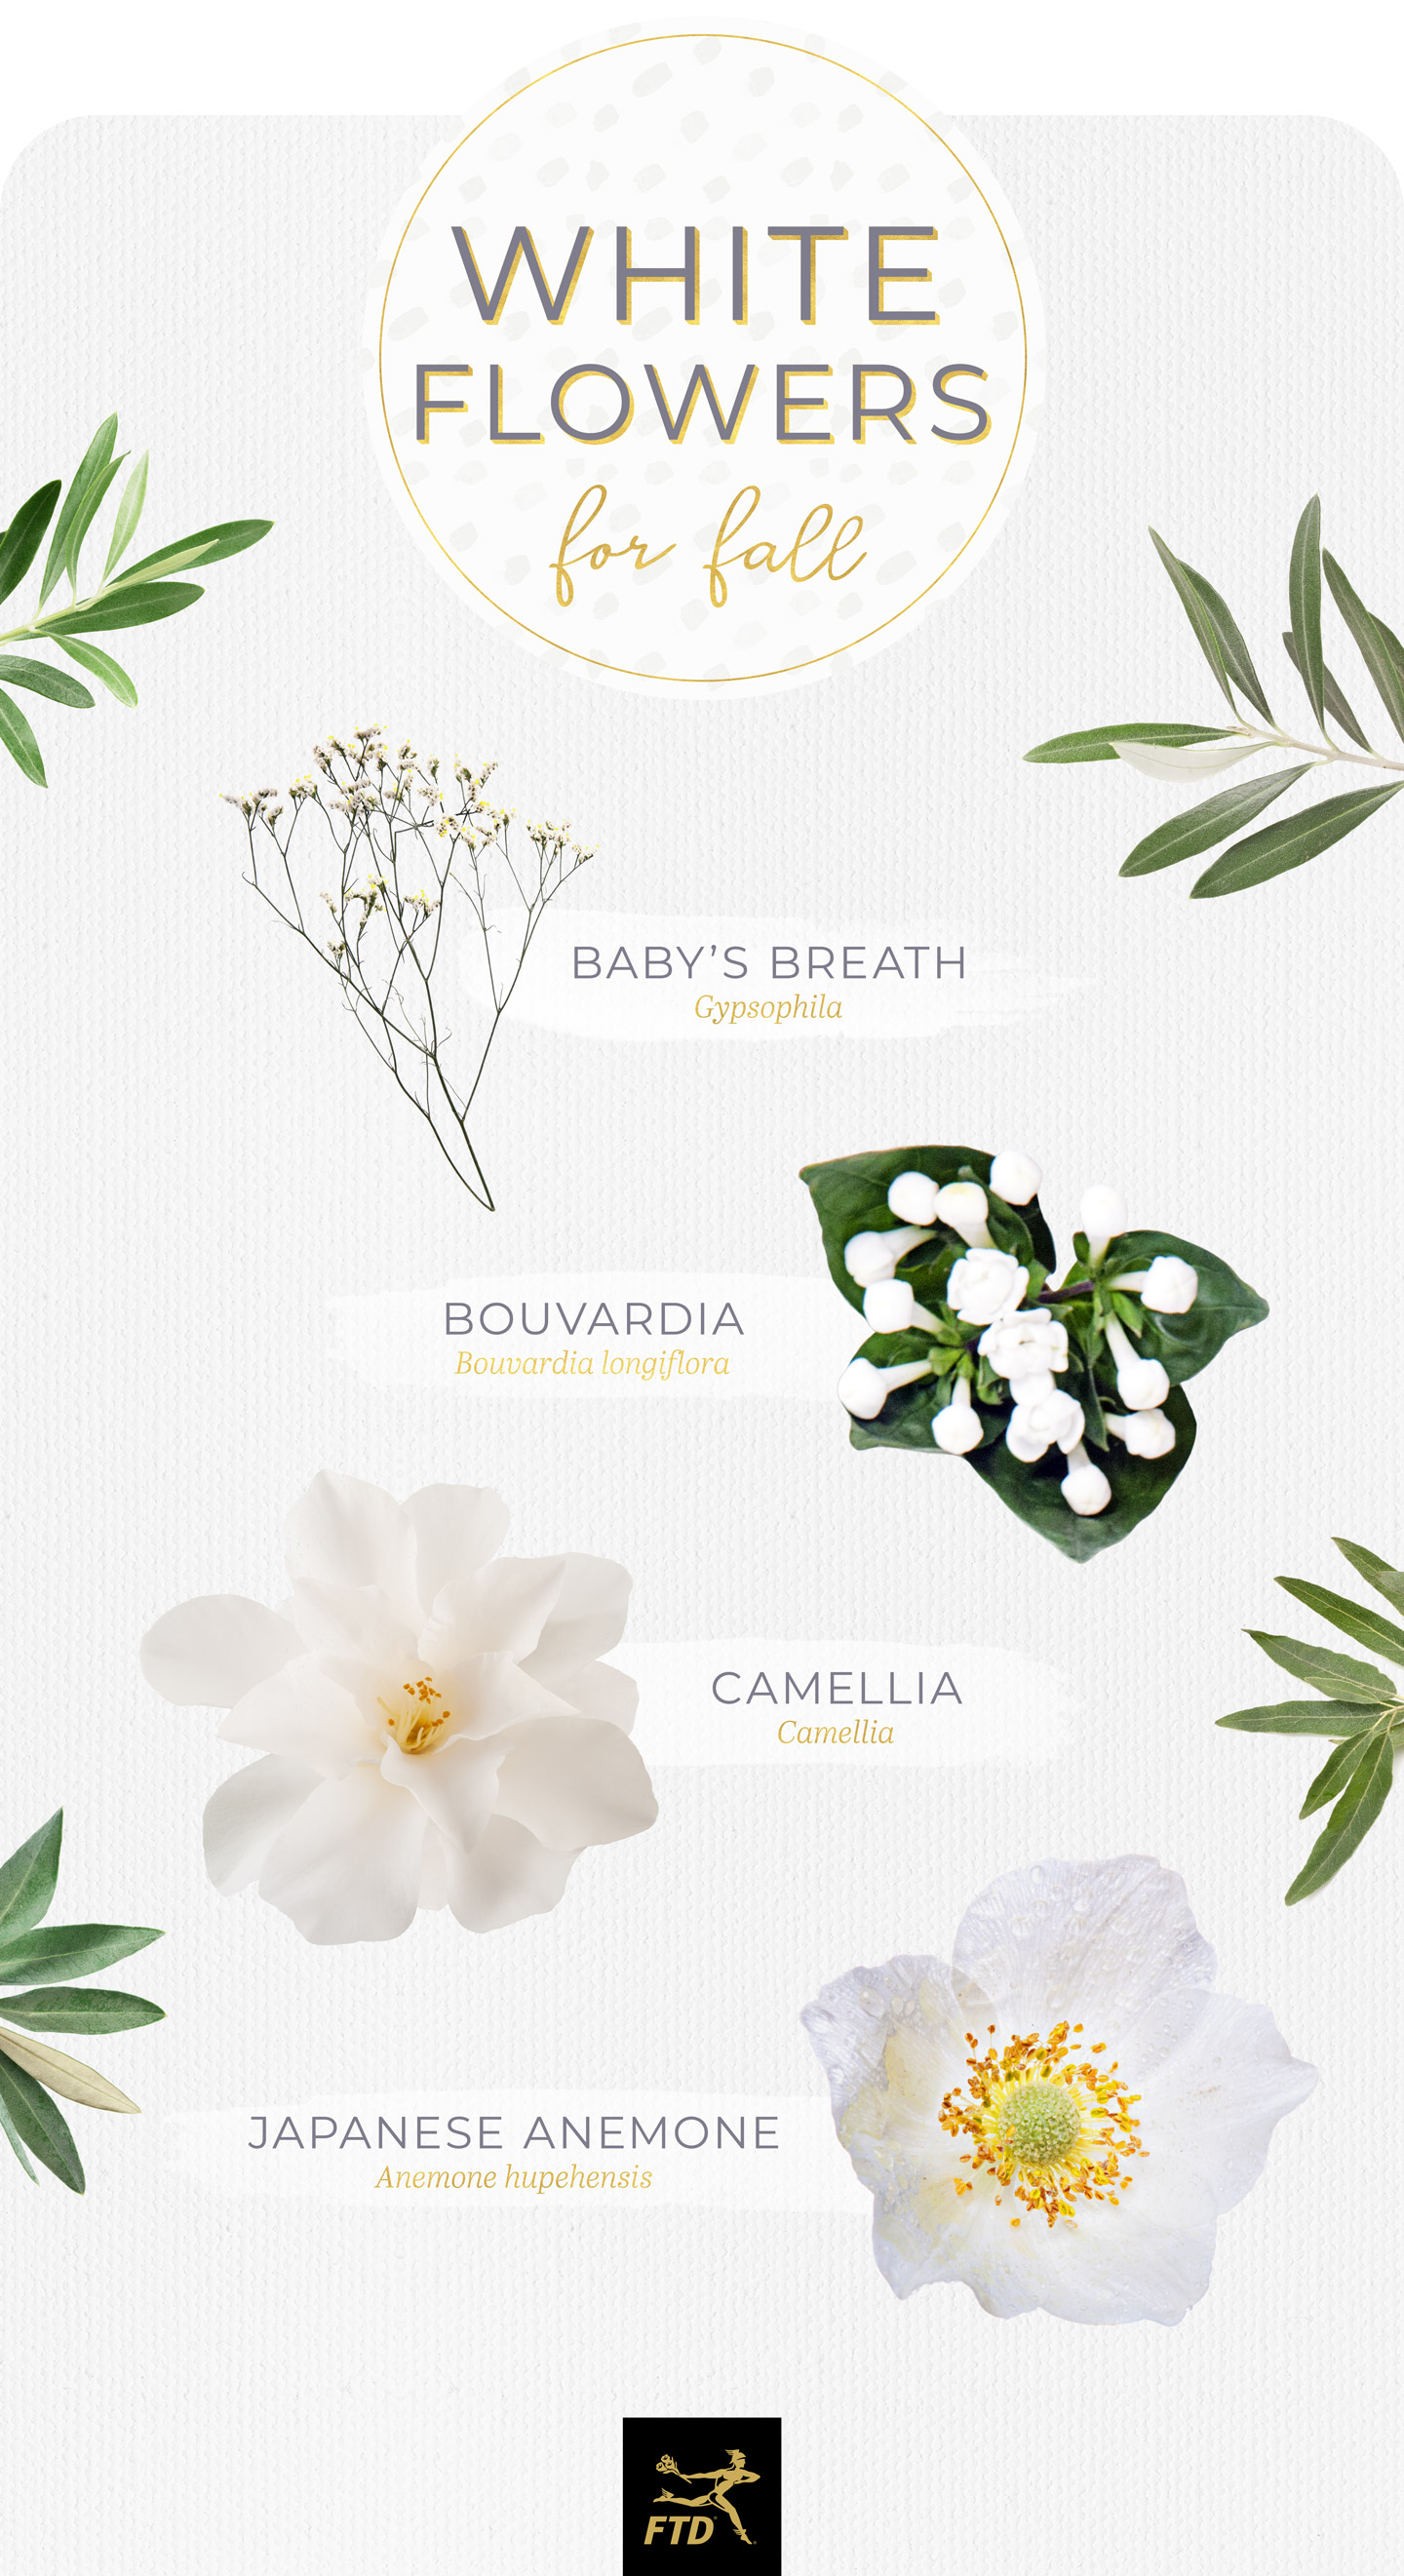 40 Types Of White Flowers – Ftd Regarding Three Flowers On Vine Wall Decor (View 22 of 30)